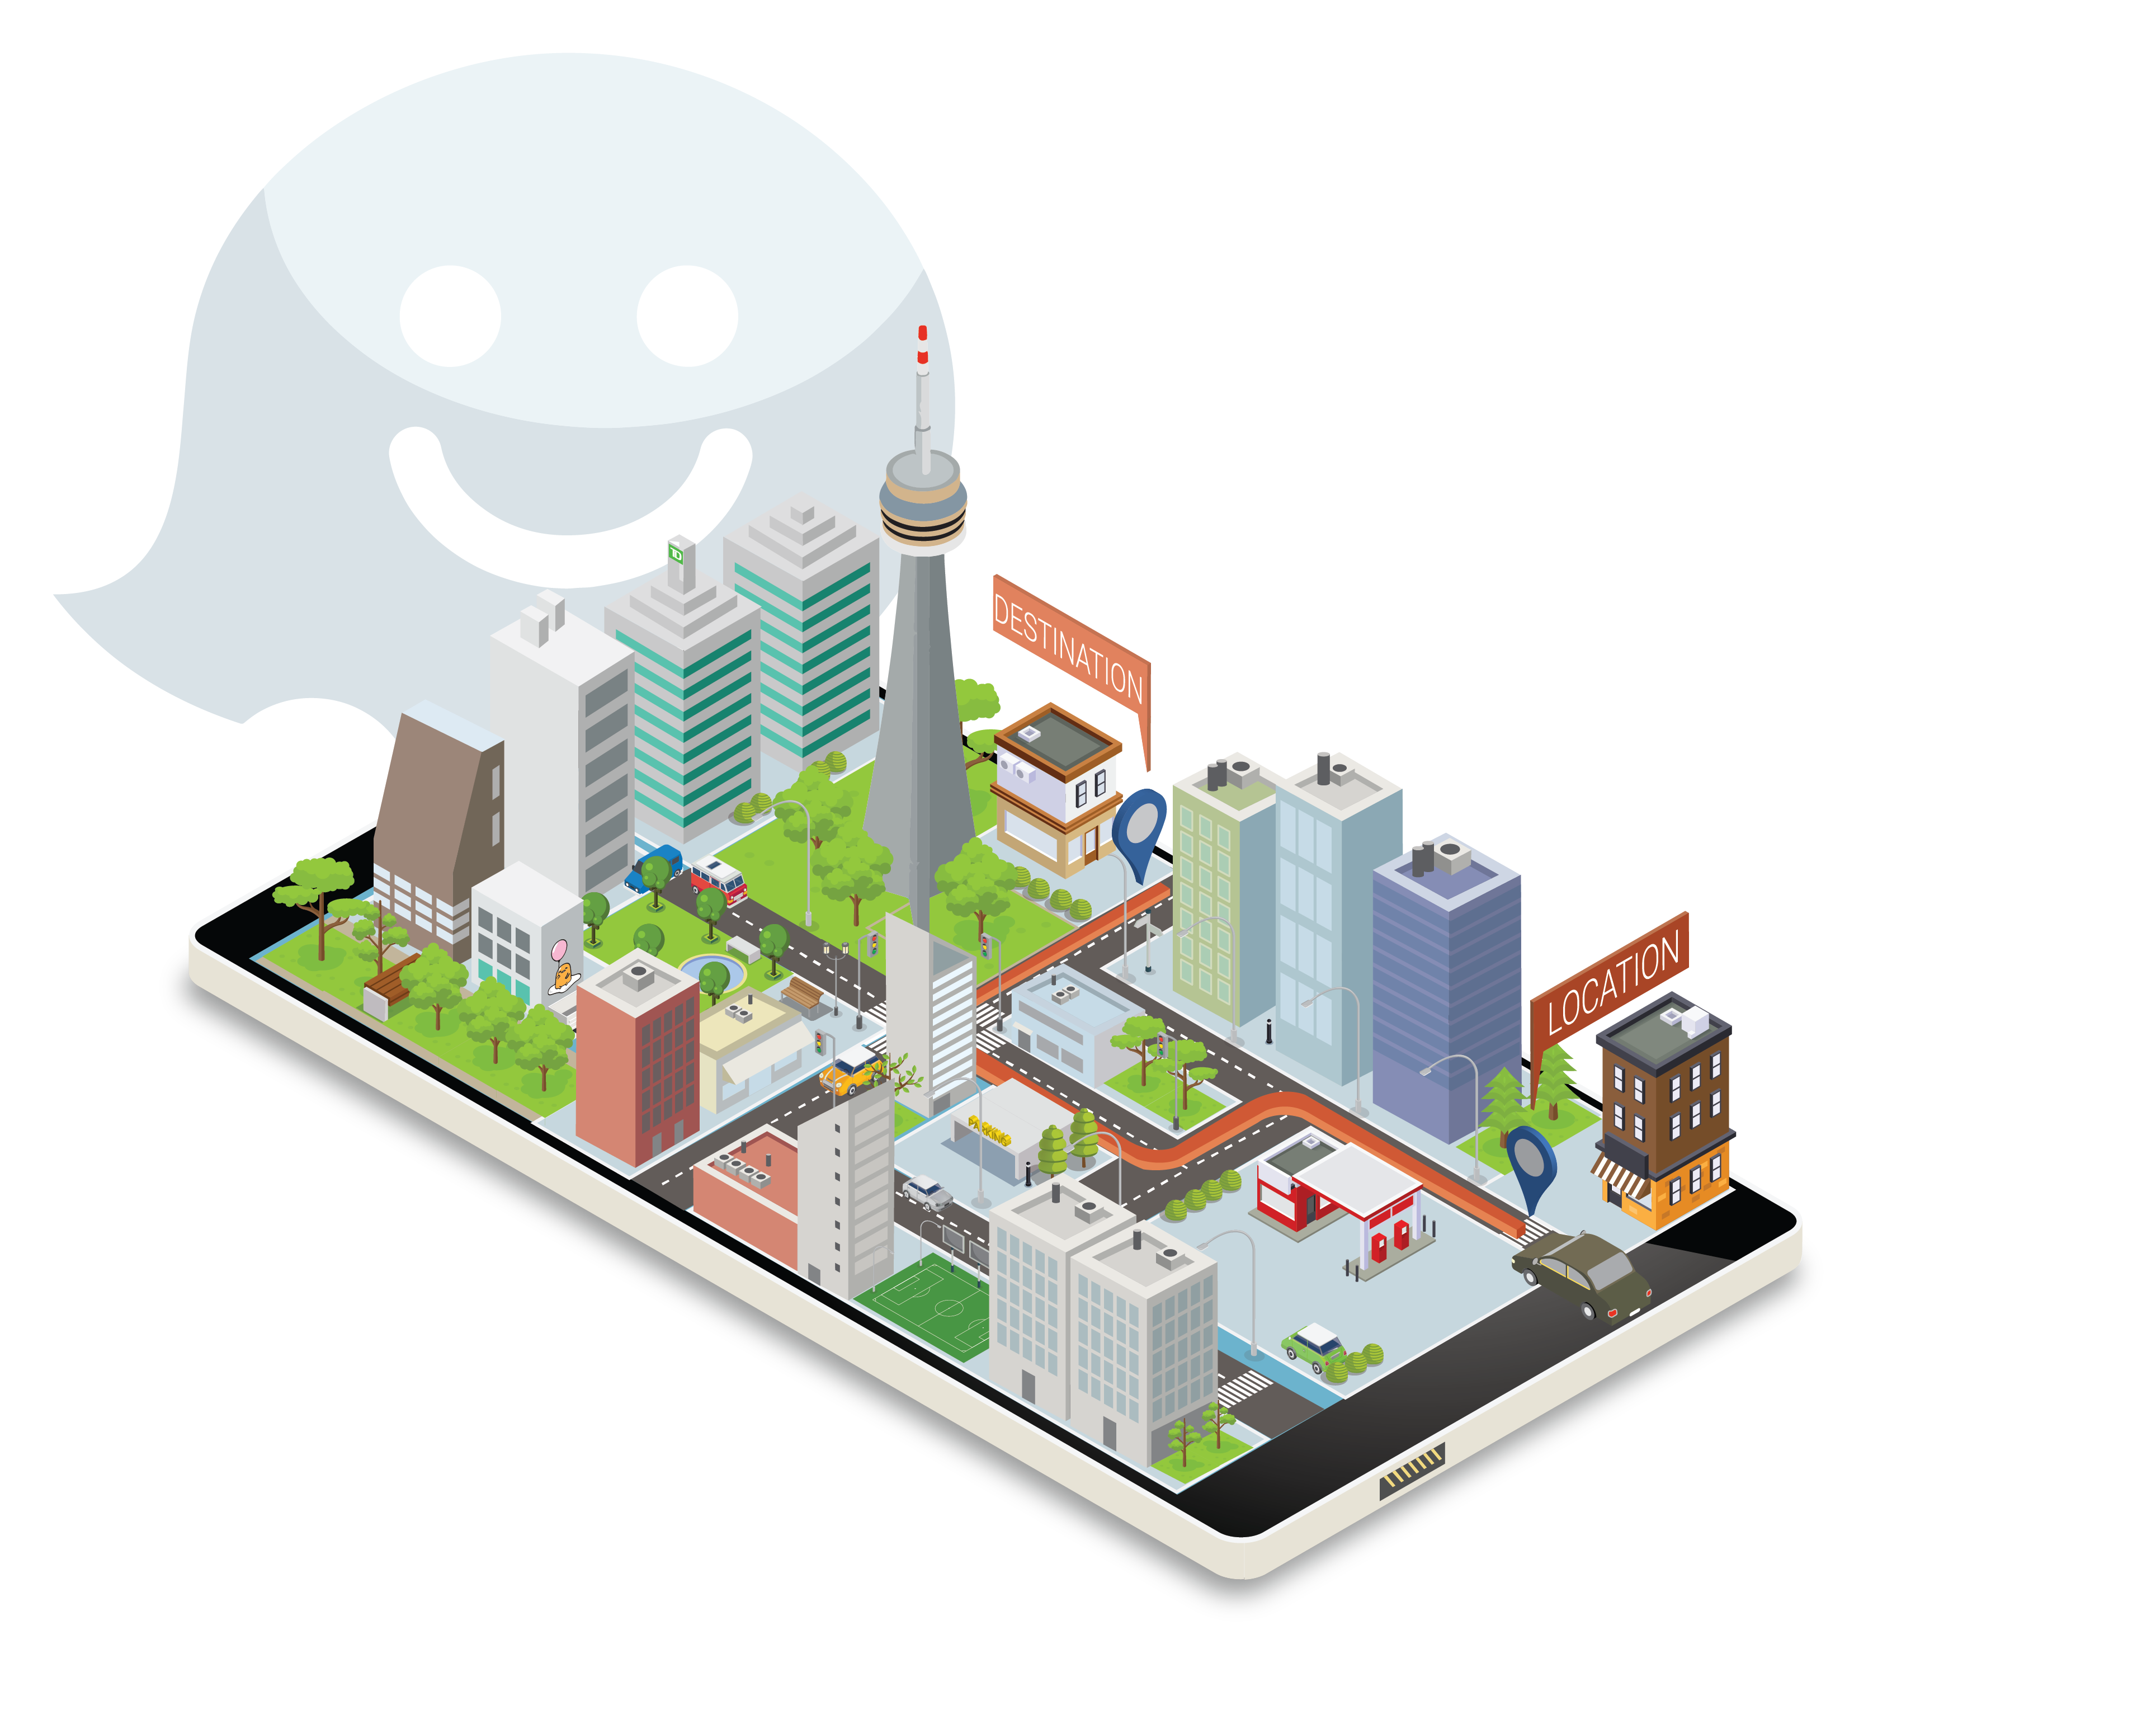 Waze: Co-Creating Transportation Efficiency - Ivey Business Review